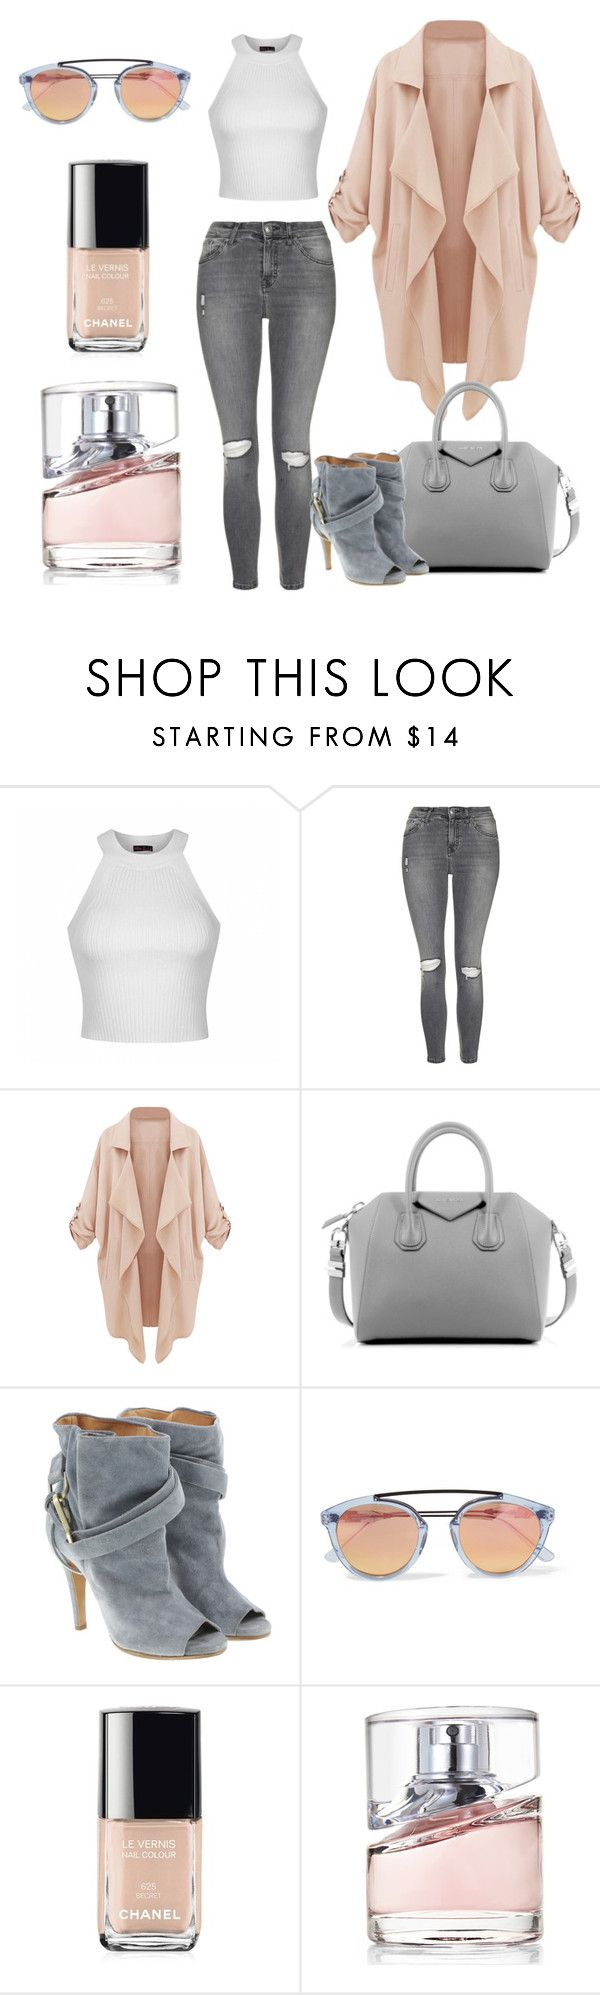 """""""Untitled #6"""" by sylver-fang on Polyvore featuring Ally Fashion, Topshop, Givenchy, Maison Margiela, Westward Leaning, Chanel, BOSS Hugo Boss, women's clothing, women and female"""